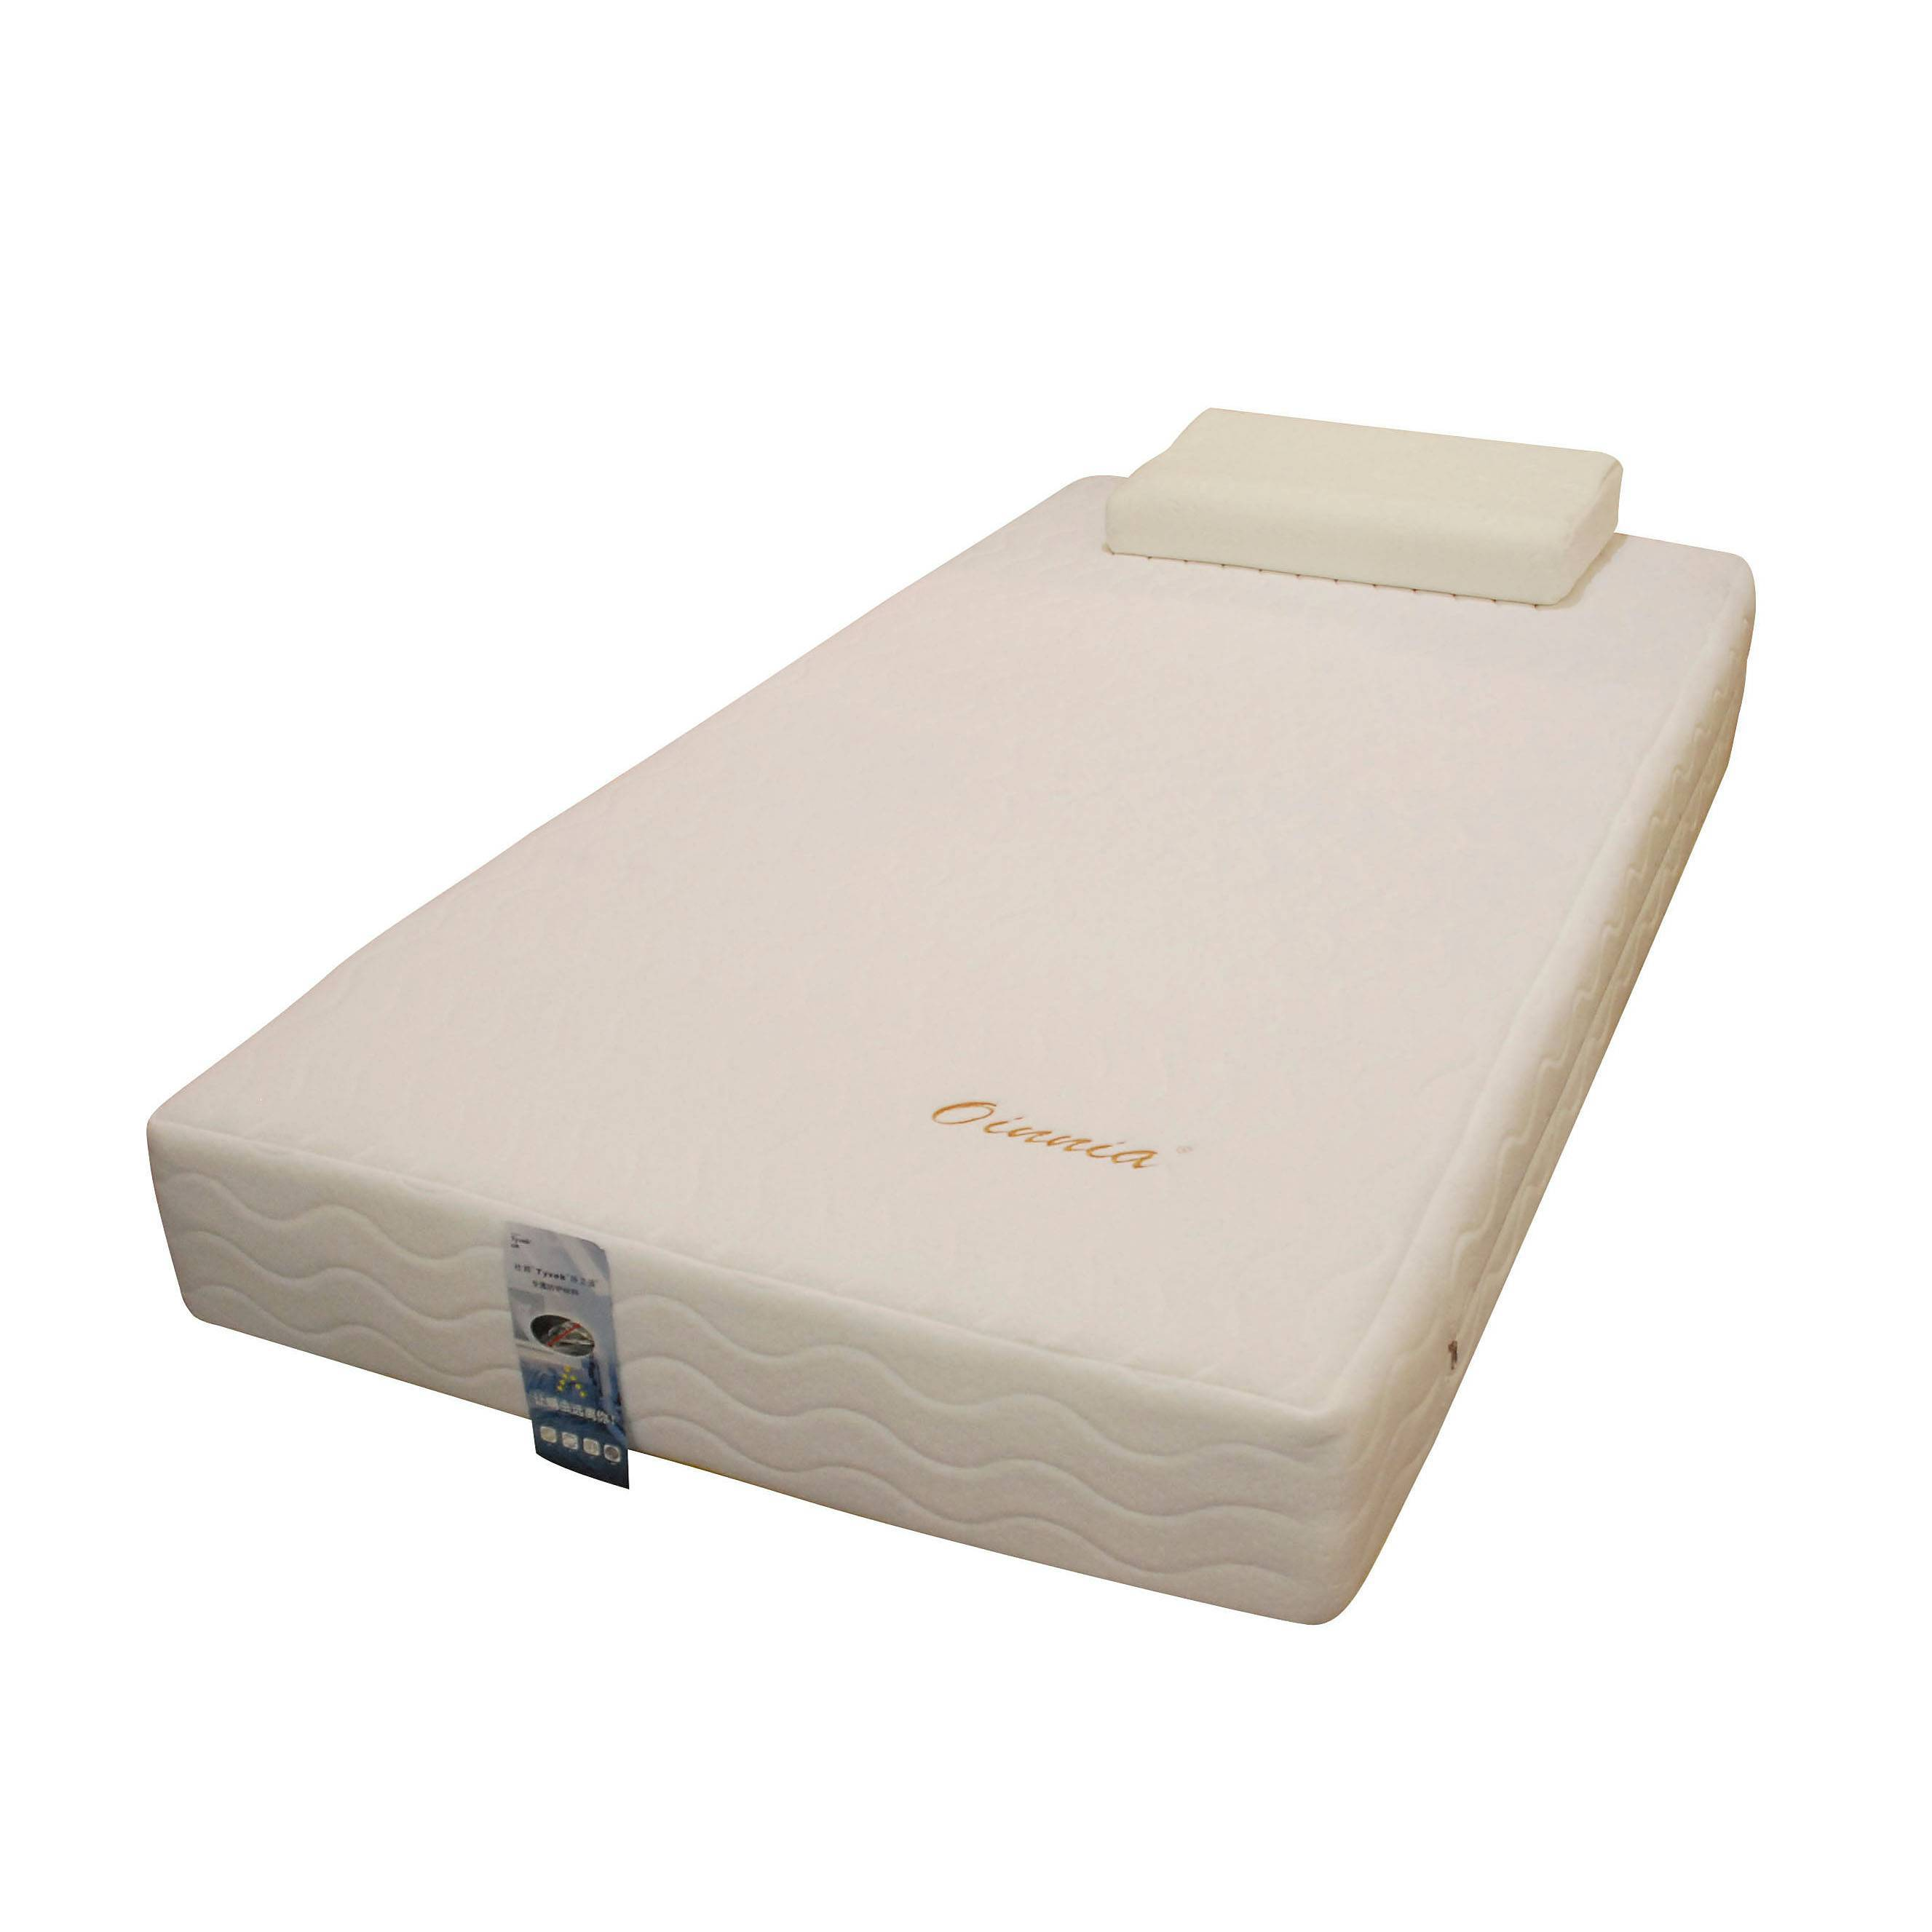 Super single mattress - Shanghai Oinnia Bed Co., Ltd